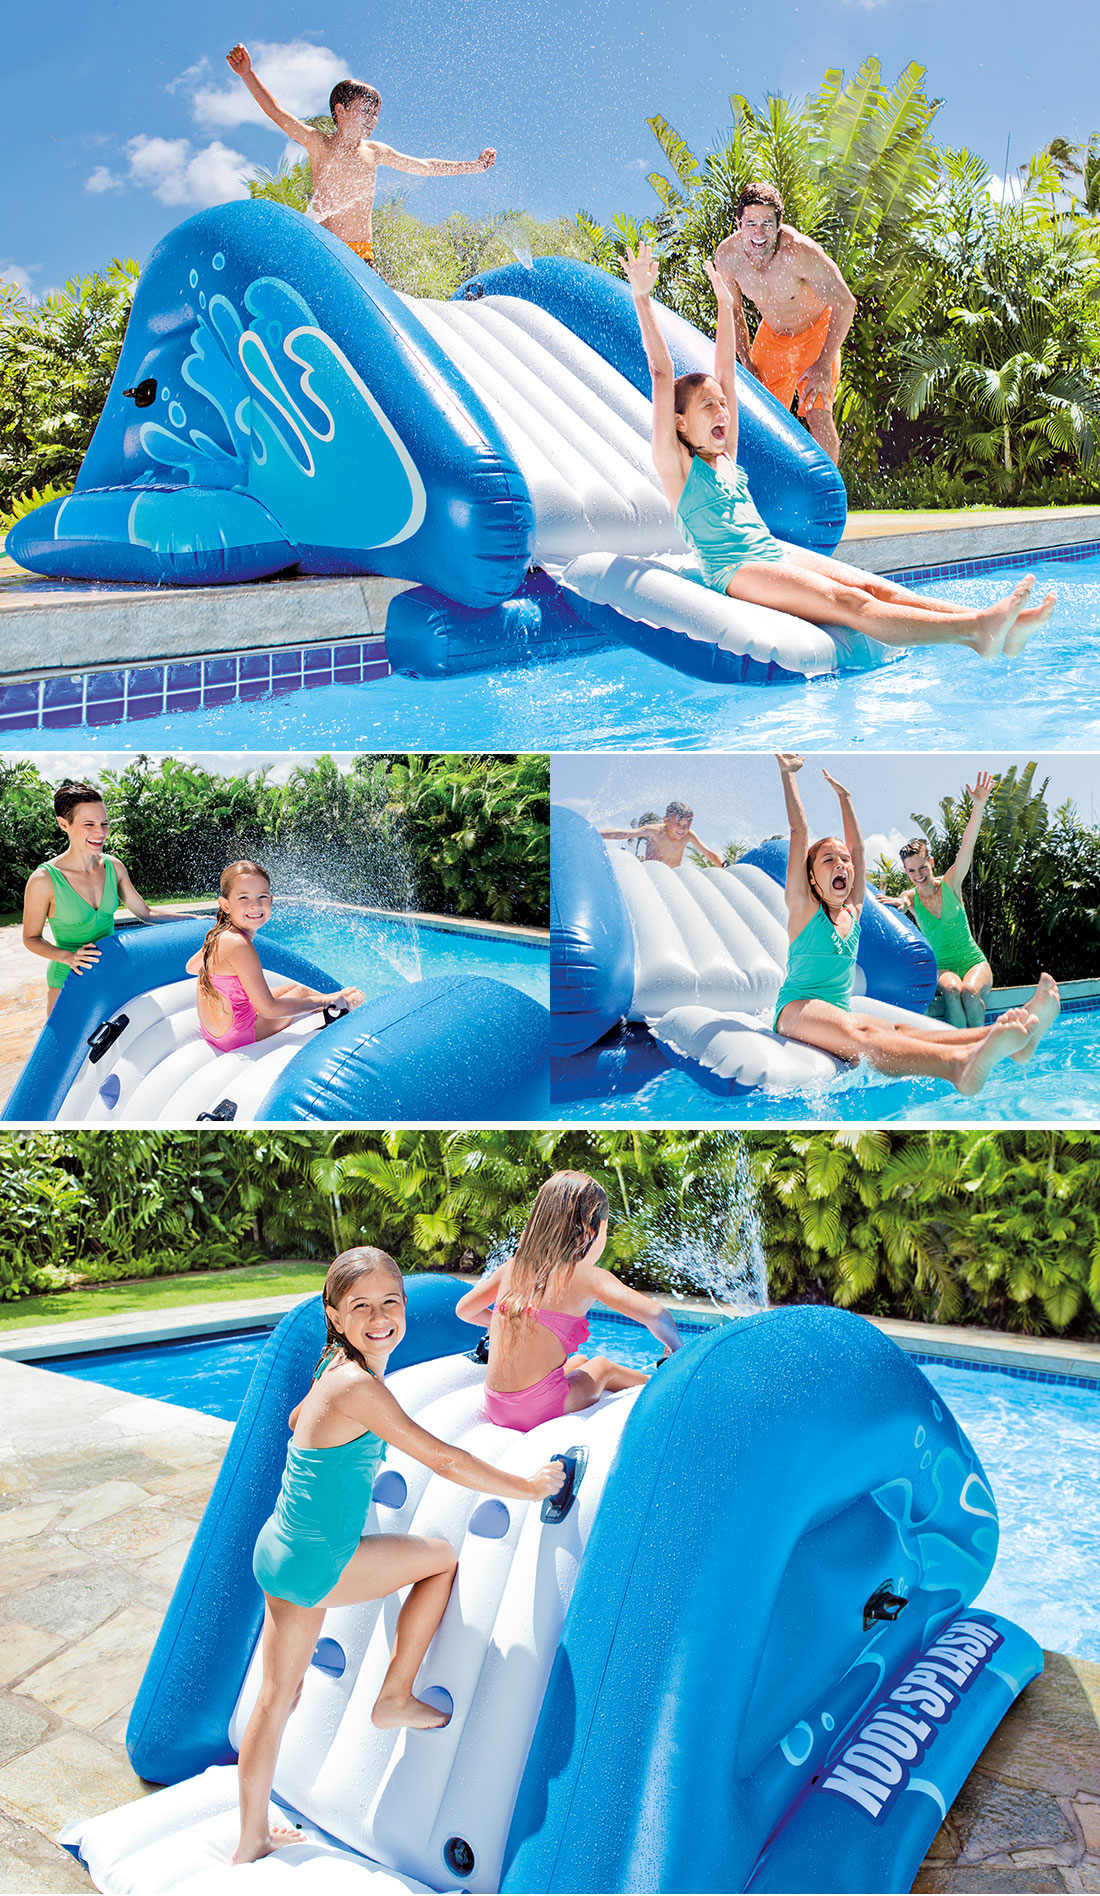 Toboggan piscine gonflable cool piscine gonflable pour for Piscine avec toboggan gonflable